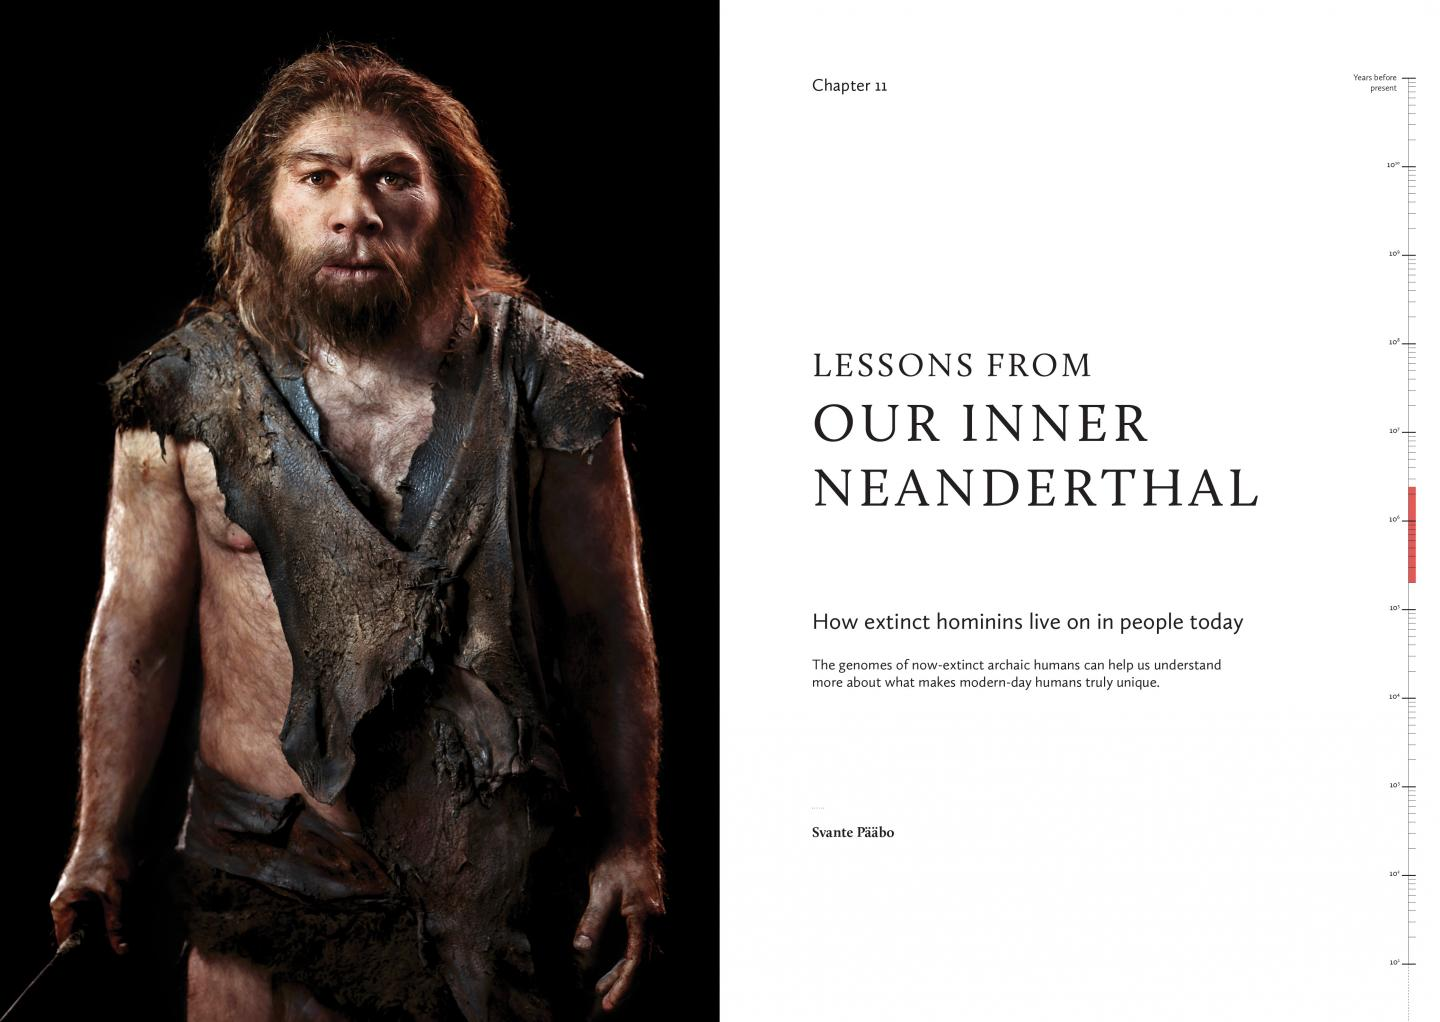 Sydney Brenner's 10-on-10: The Chronicles of Evolution Sample Page on Neanderthals